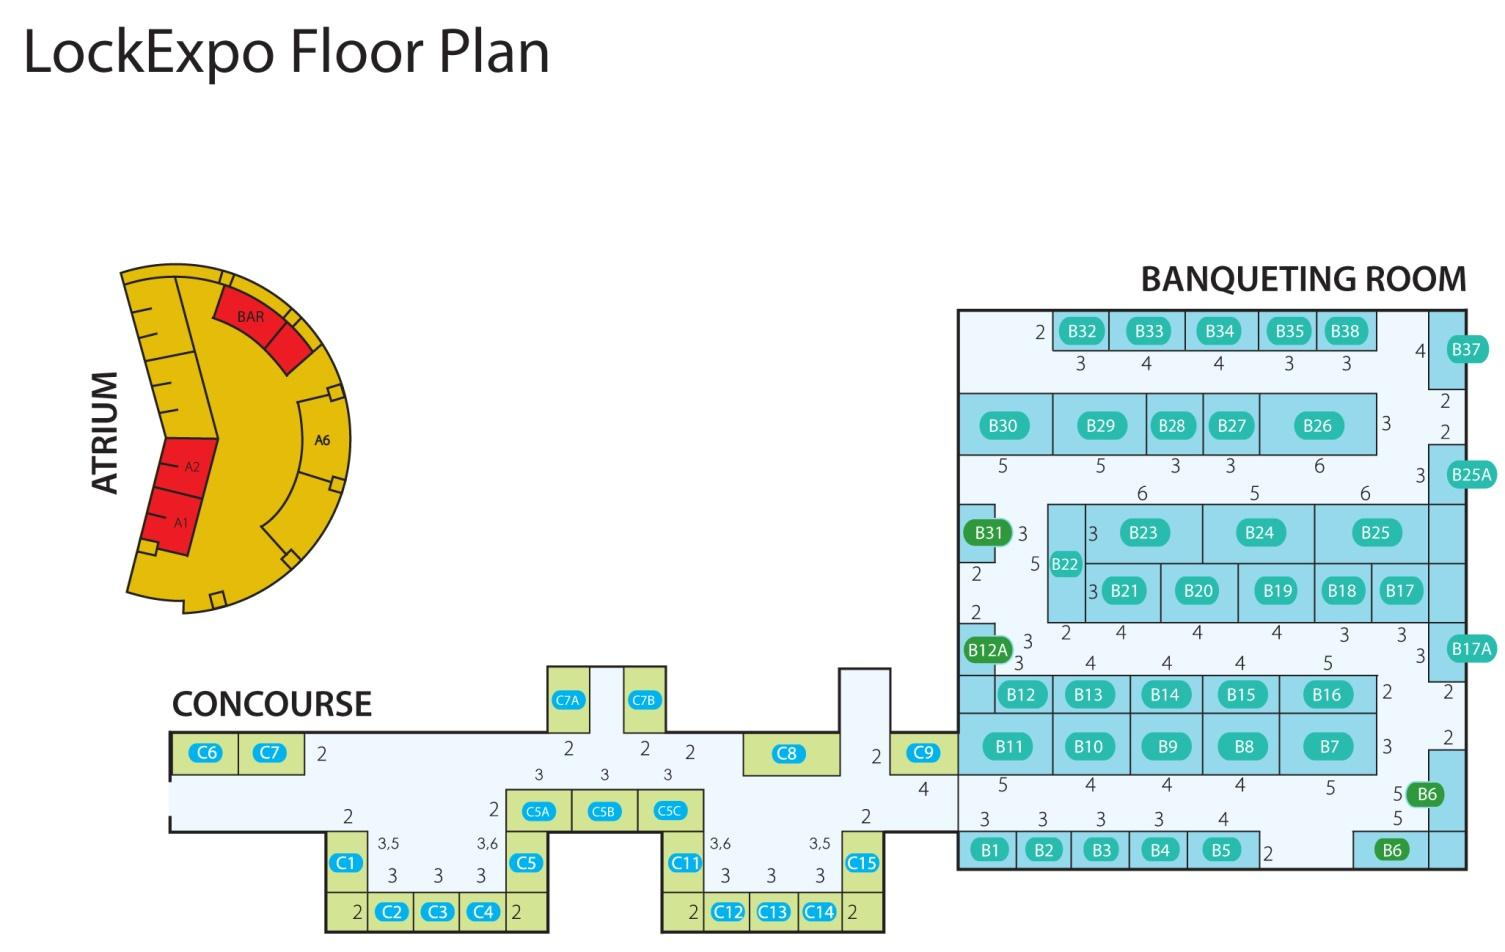 Floorplan - Lockexpo 2019